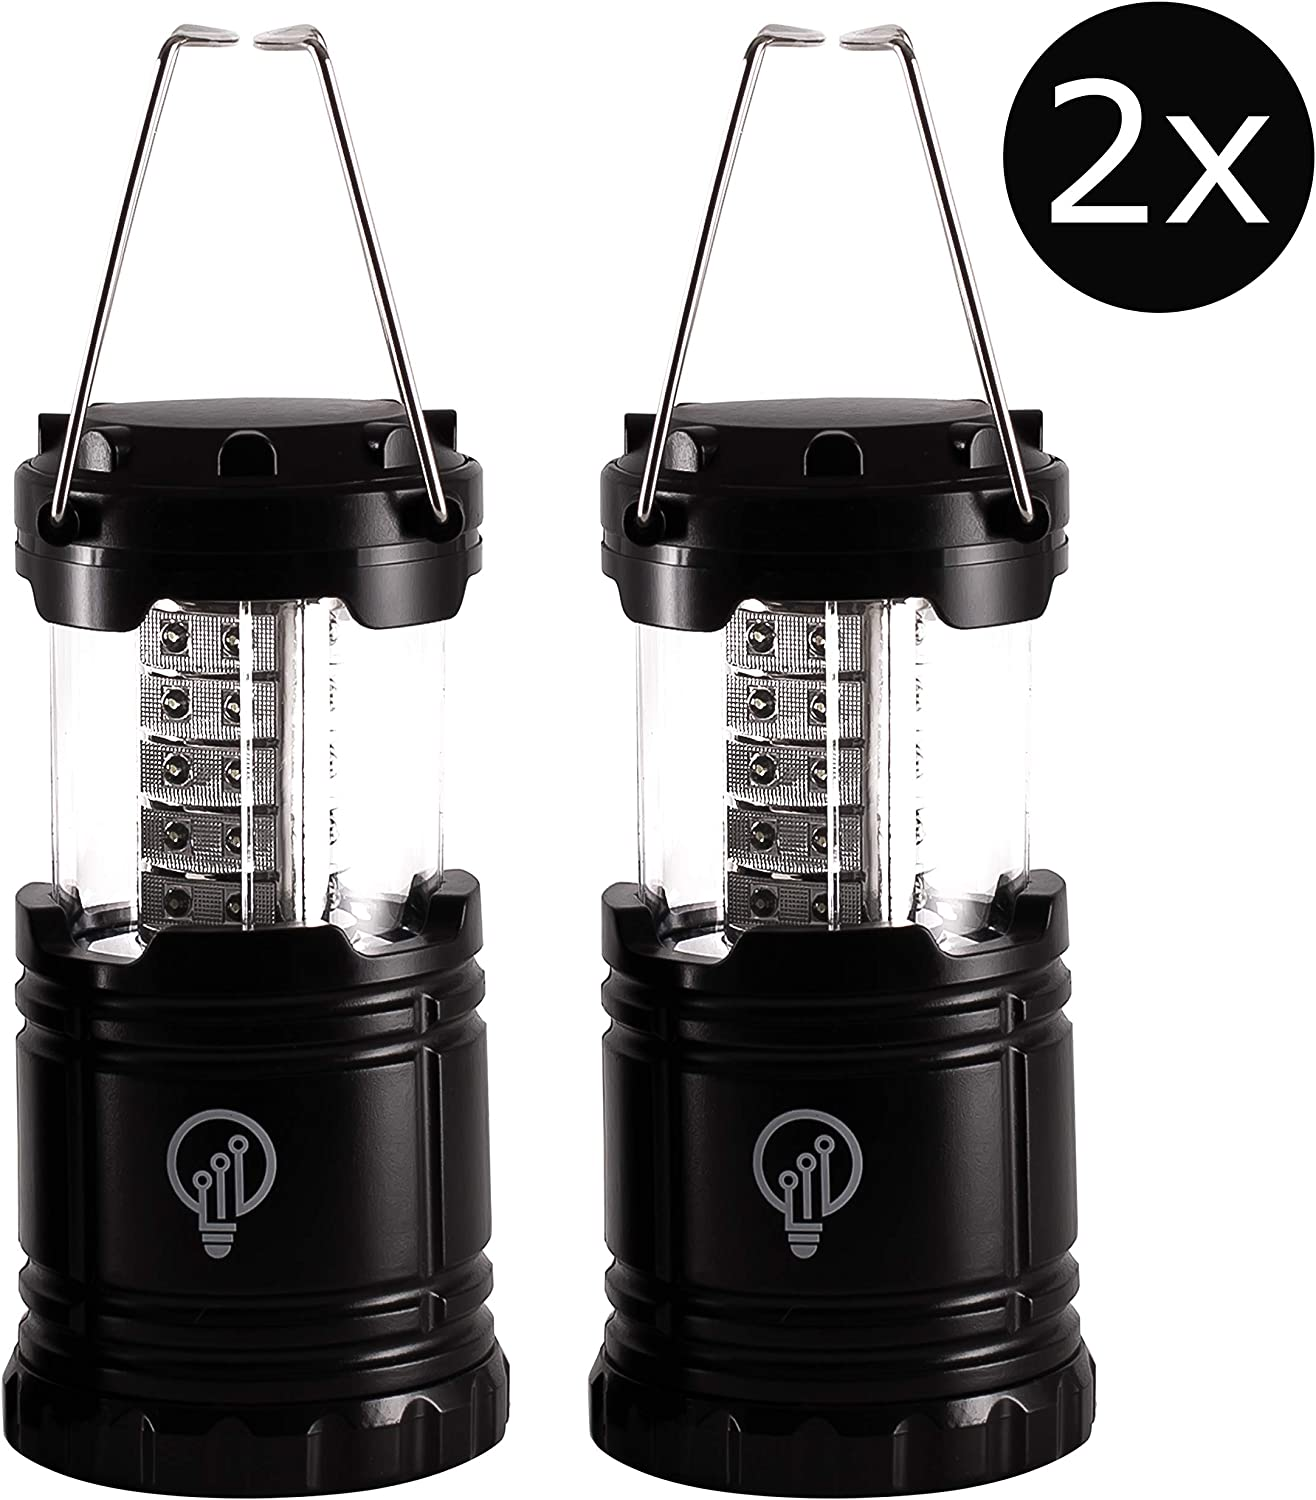 LED Lantern Emergency Camping Survival Lamp Hurricane Power Outage Lights Storm Battery Operated Indoor Outdoor Flashlight 300 Lumen Military Grade Set of 2